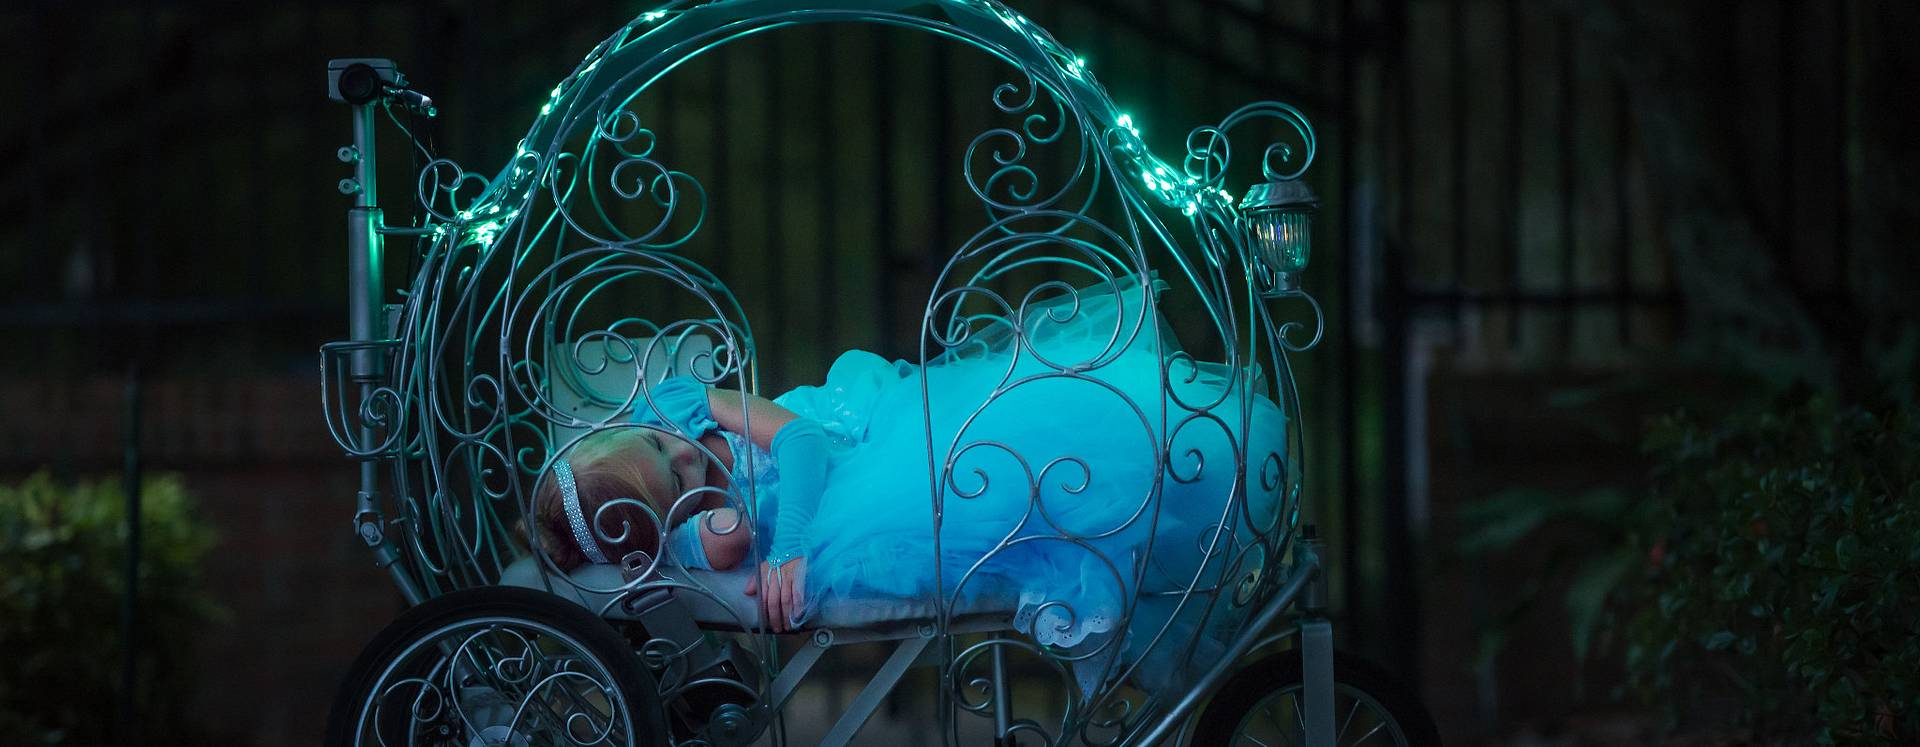 A girl dressed as a princess sleeping in a lit carriage from Princess Carriage Rentals at night